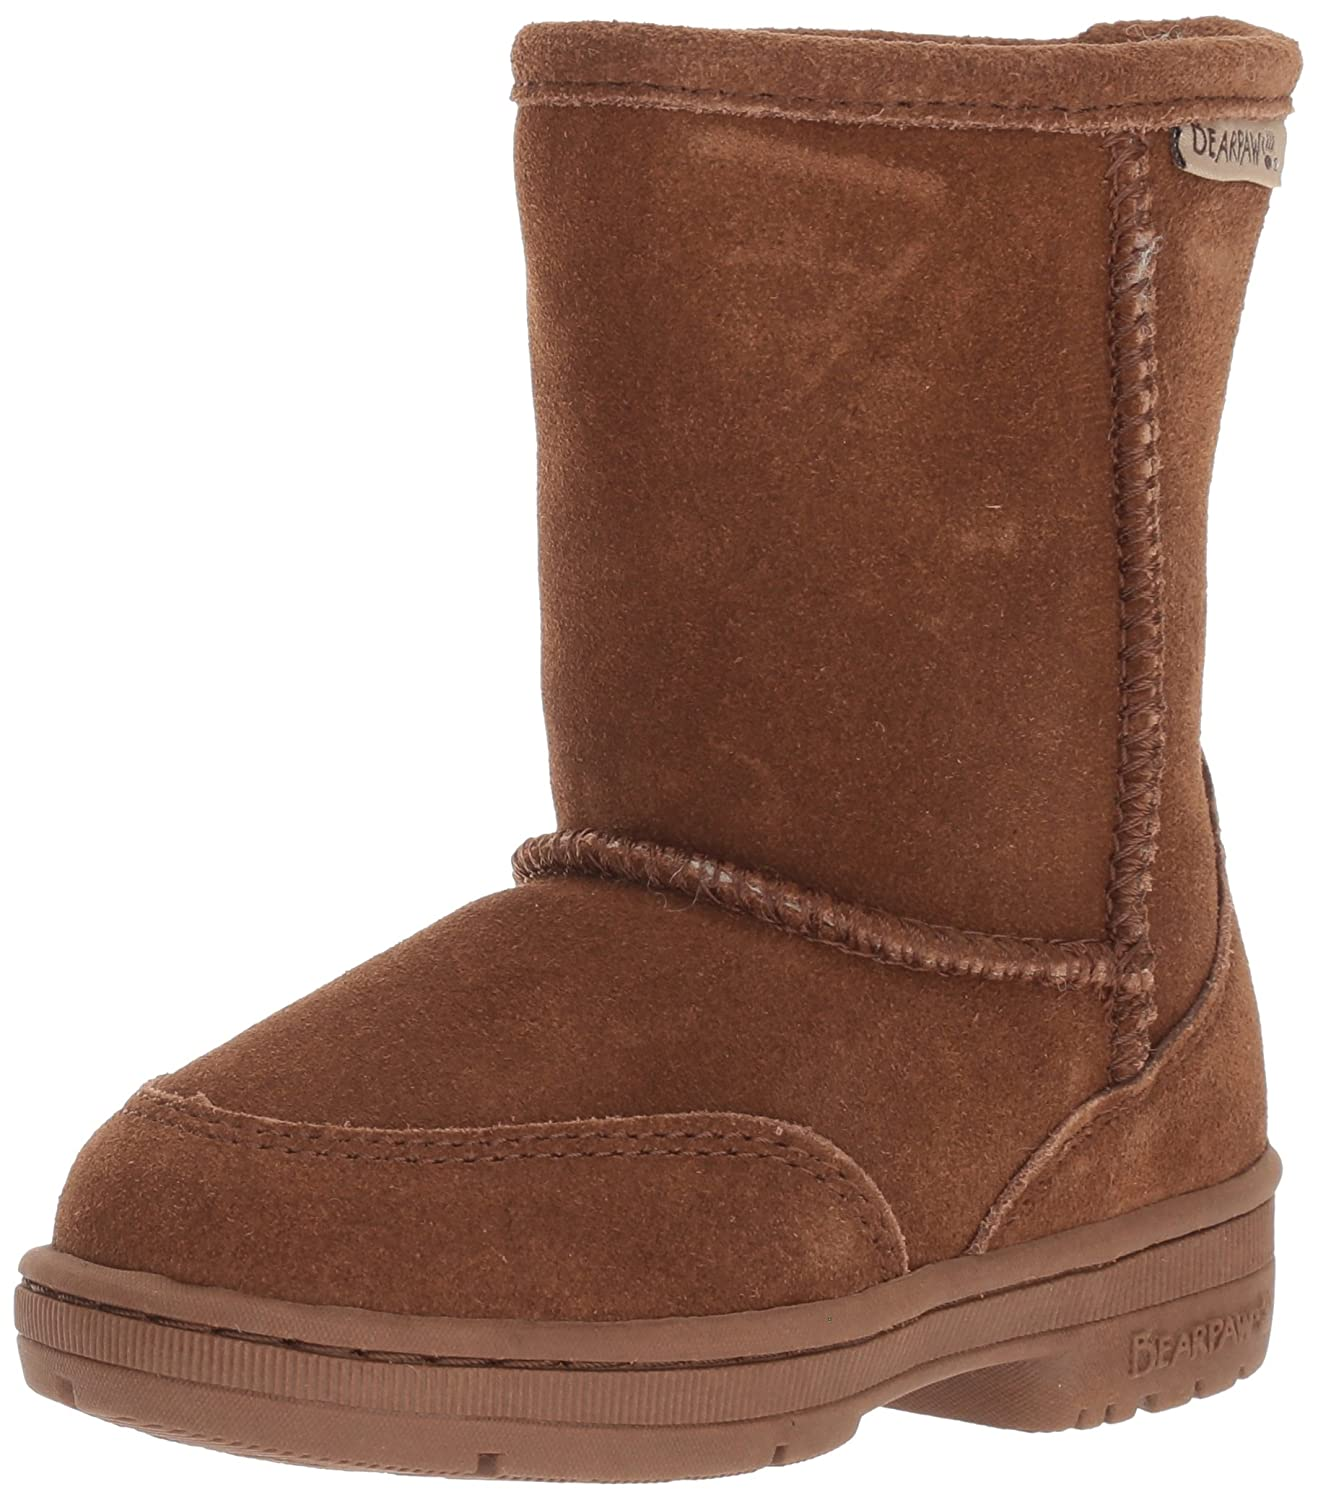 BEARPAW Meadow Youth Mid Calf Boot 604Y-220-1